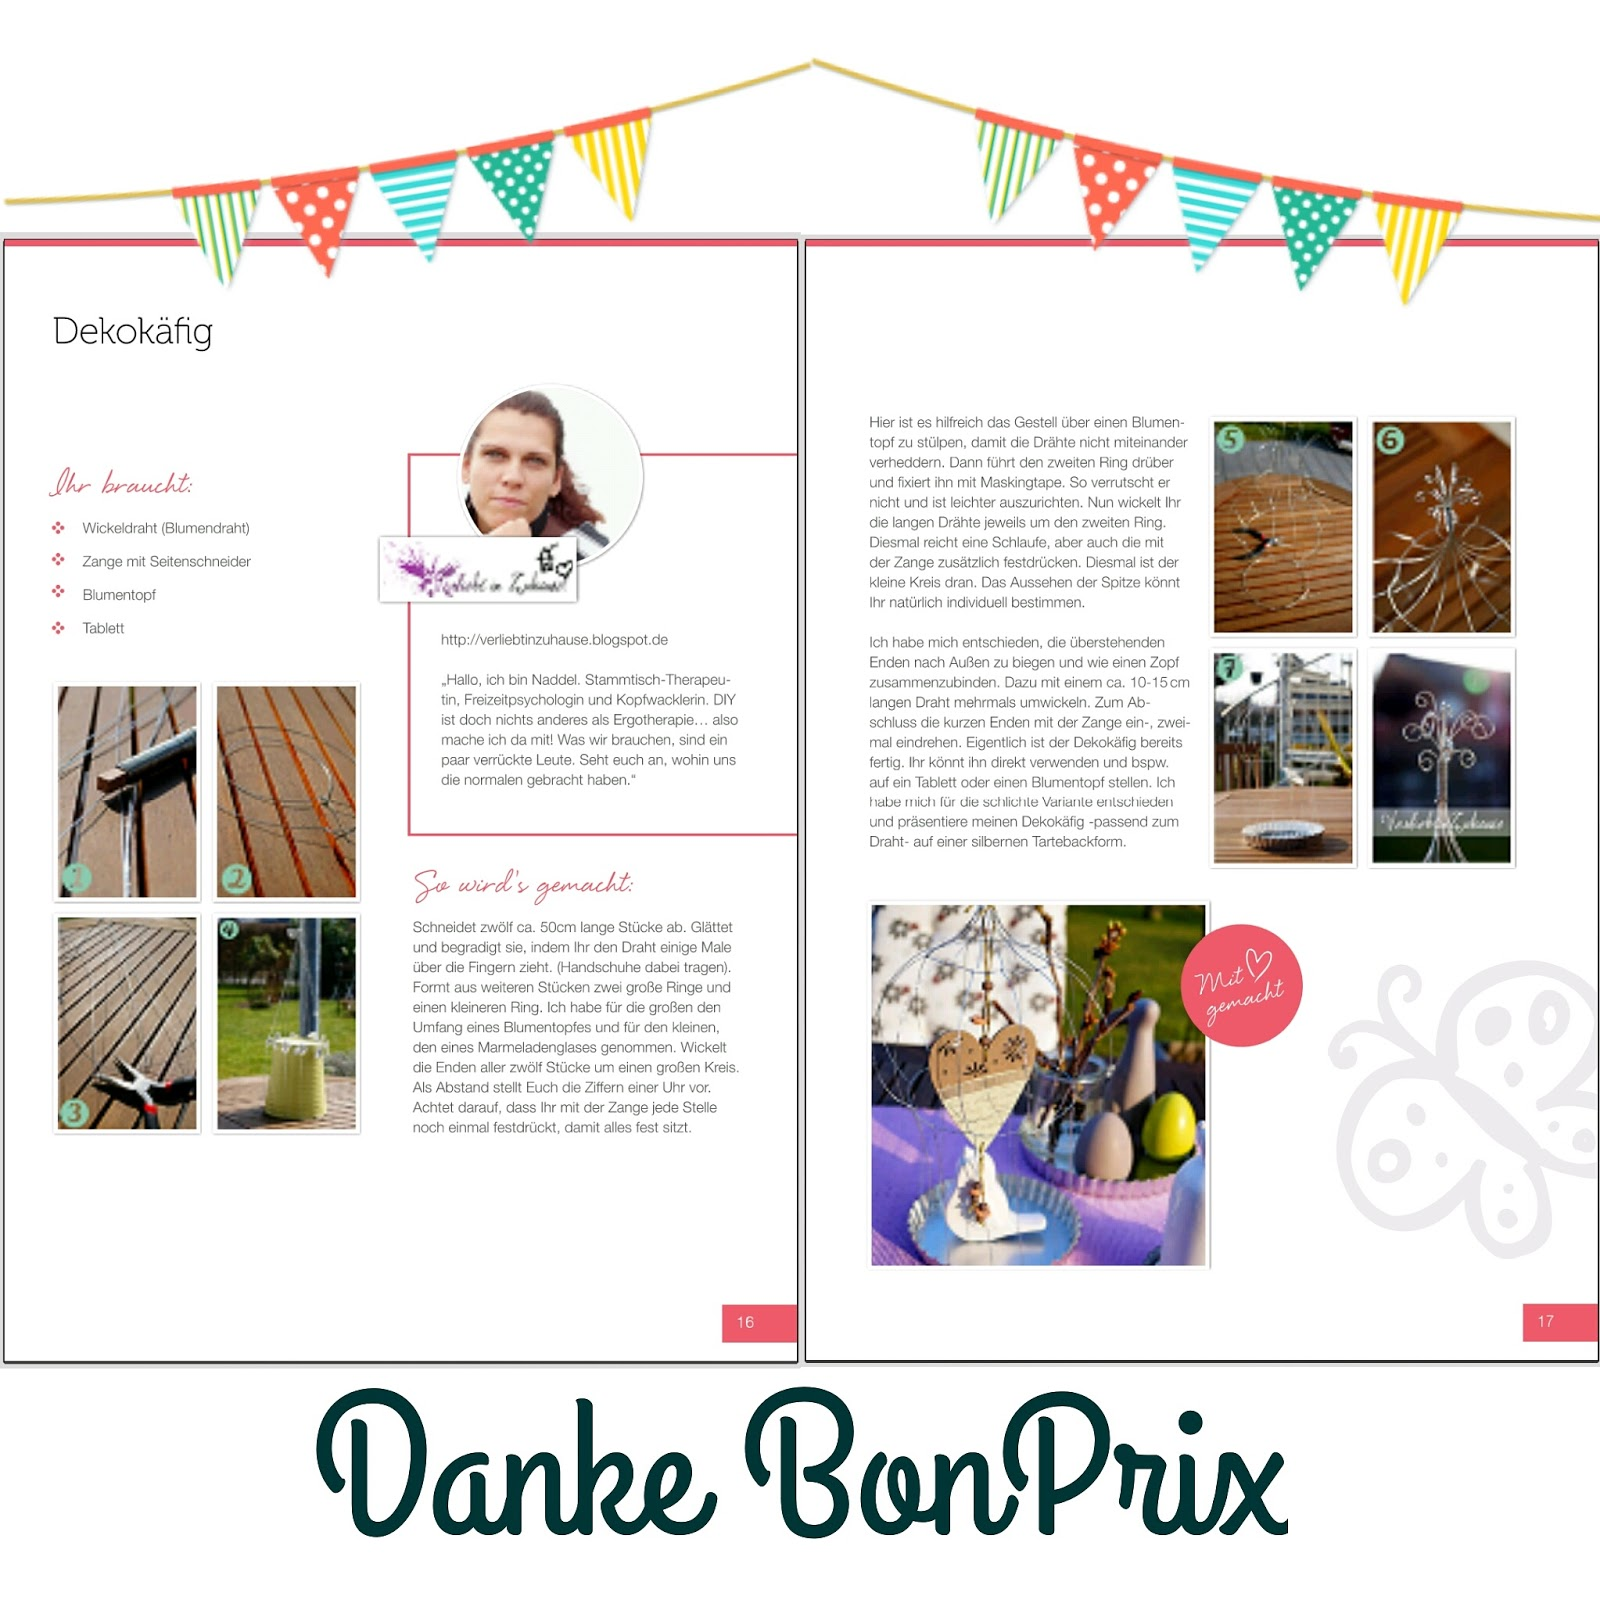 Download bonprix eBook Deko-Ideen